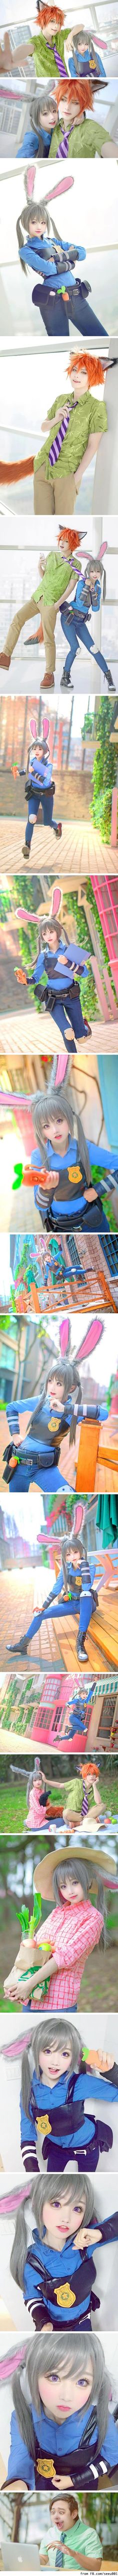 GoBoiano - This Zootopia Cosplay Set Will Kill You With Cuteness